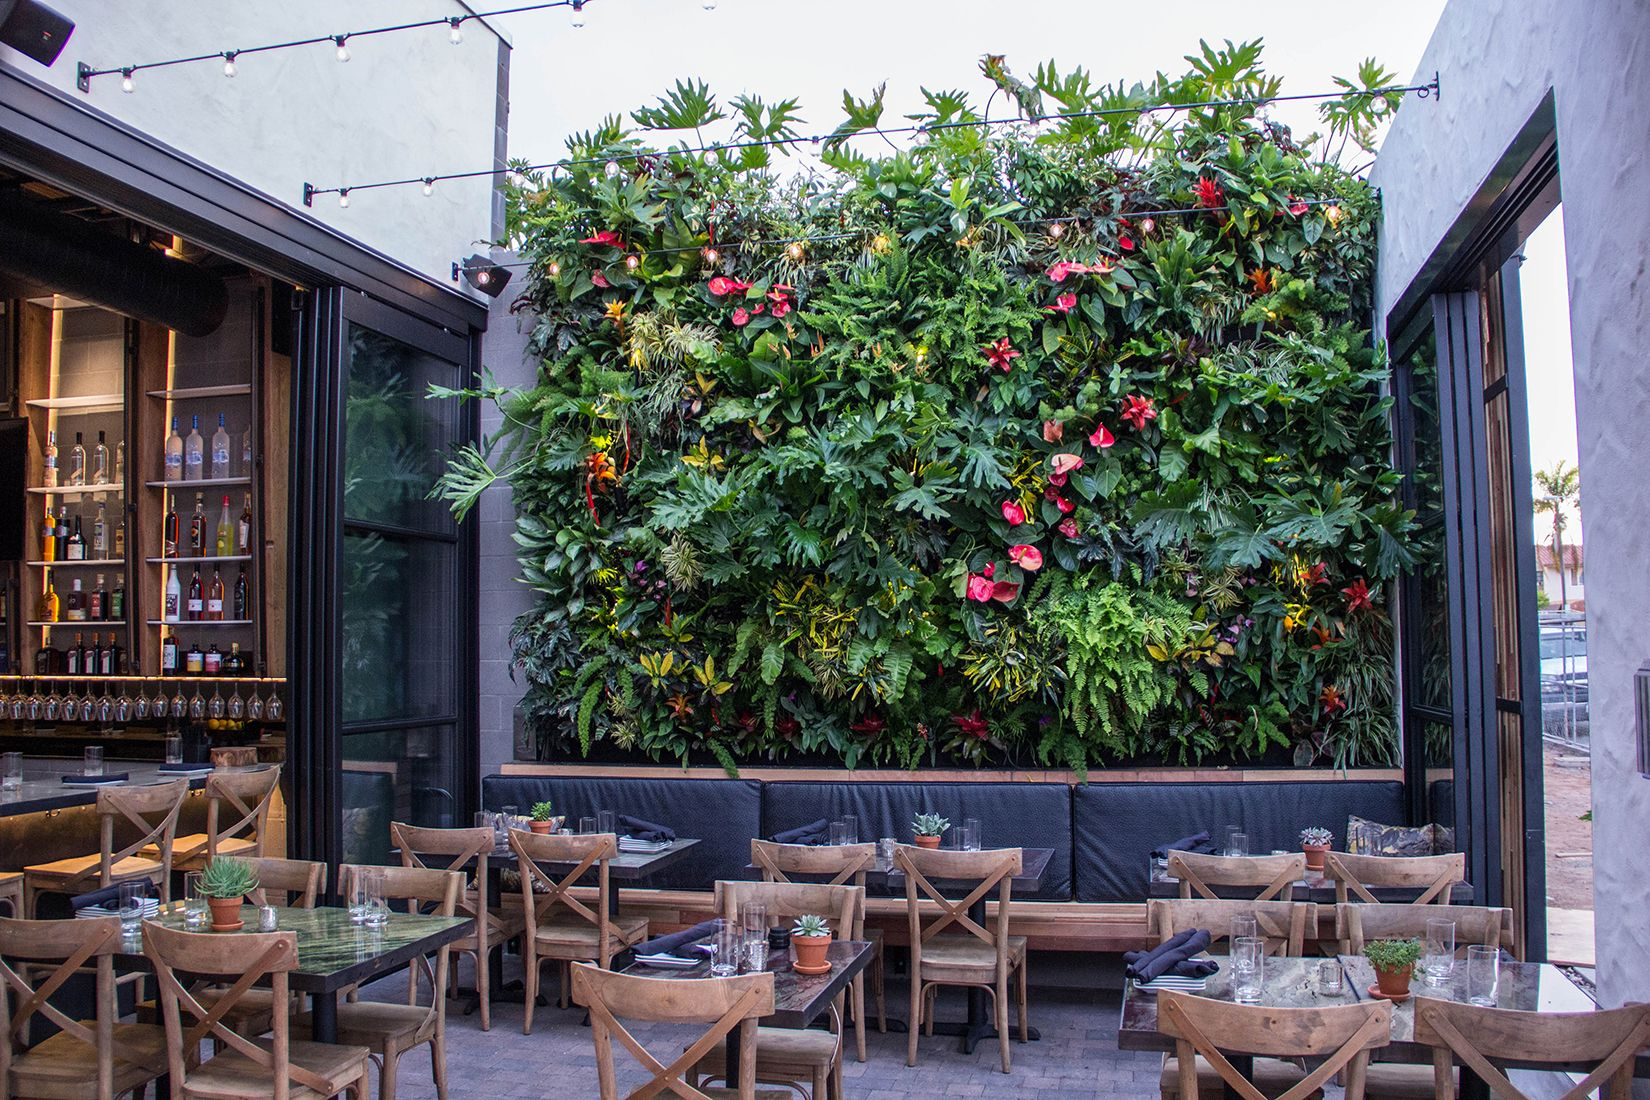 Living Green Wall at The Patio on Goldfinch | Patio ... on Green Wall Patio id=47434